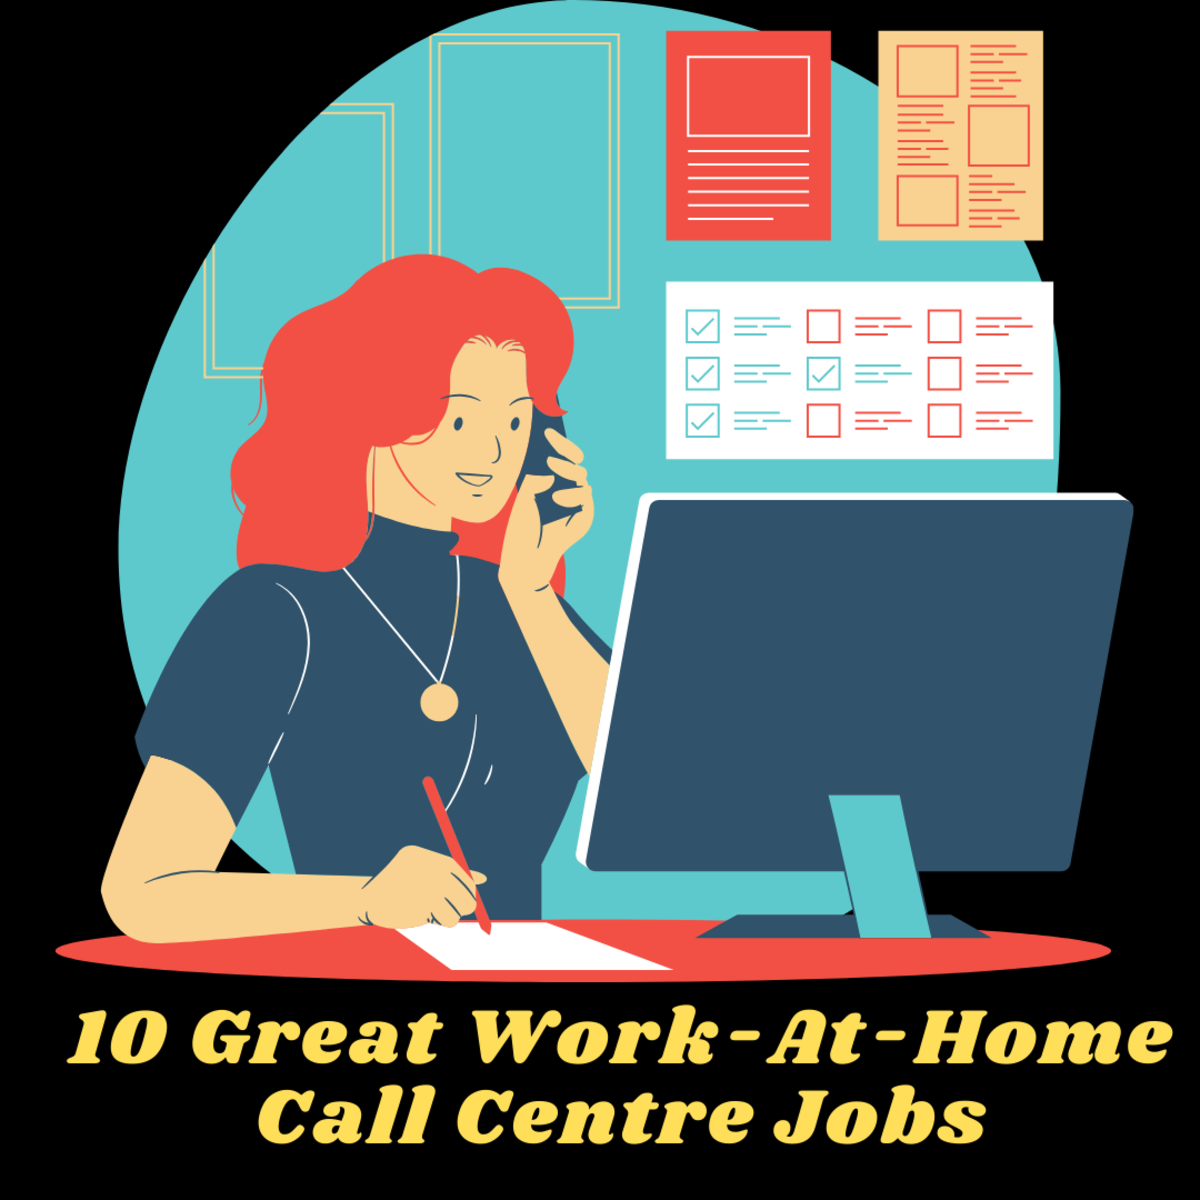 Read on to learn if these work-at-home opportunities are right for you.